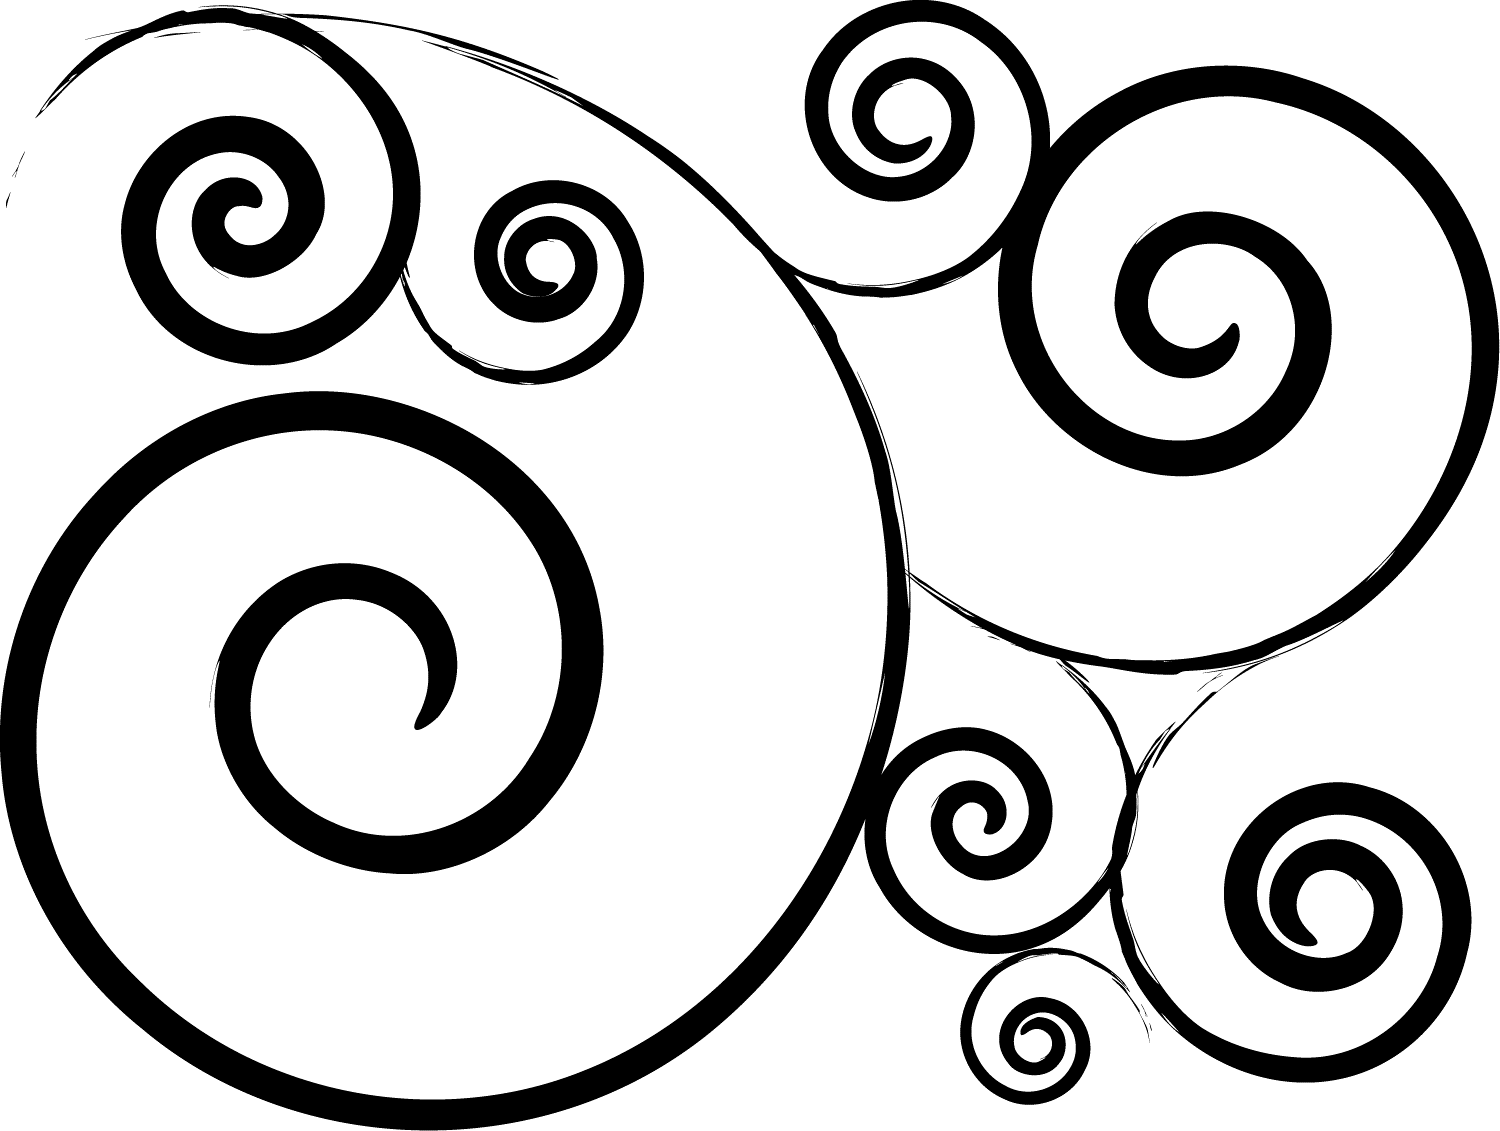 Line Art clipart swirls Clipart Photoshop swirl+clip+art For Brushes